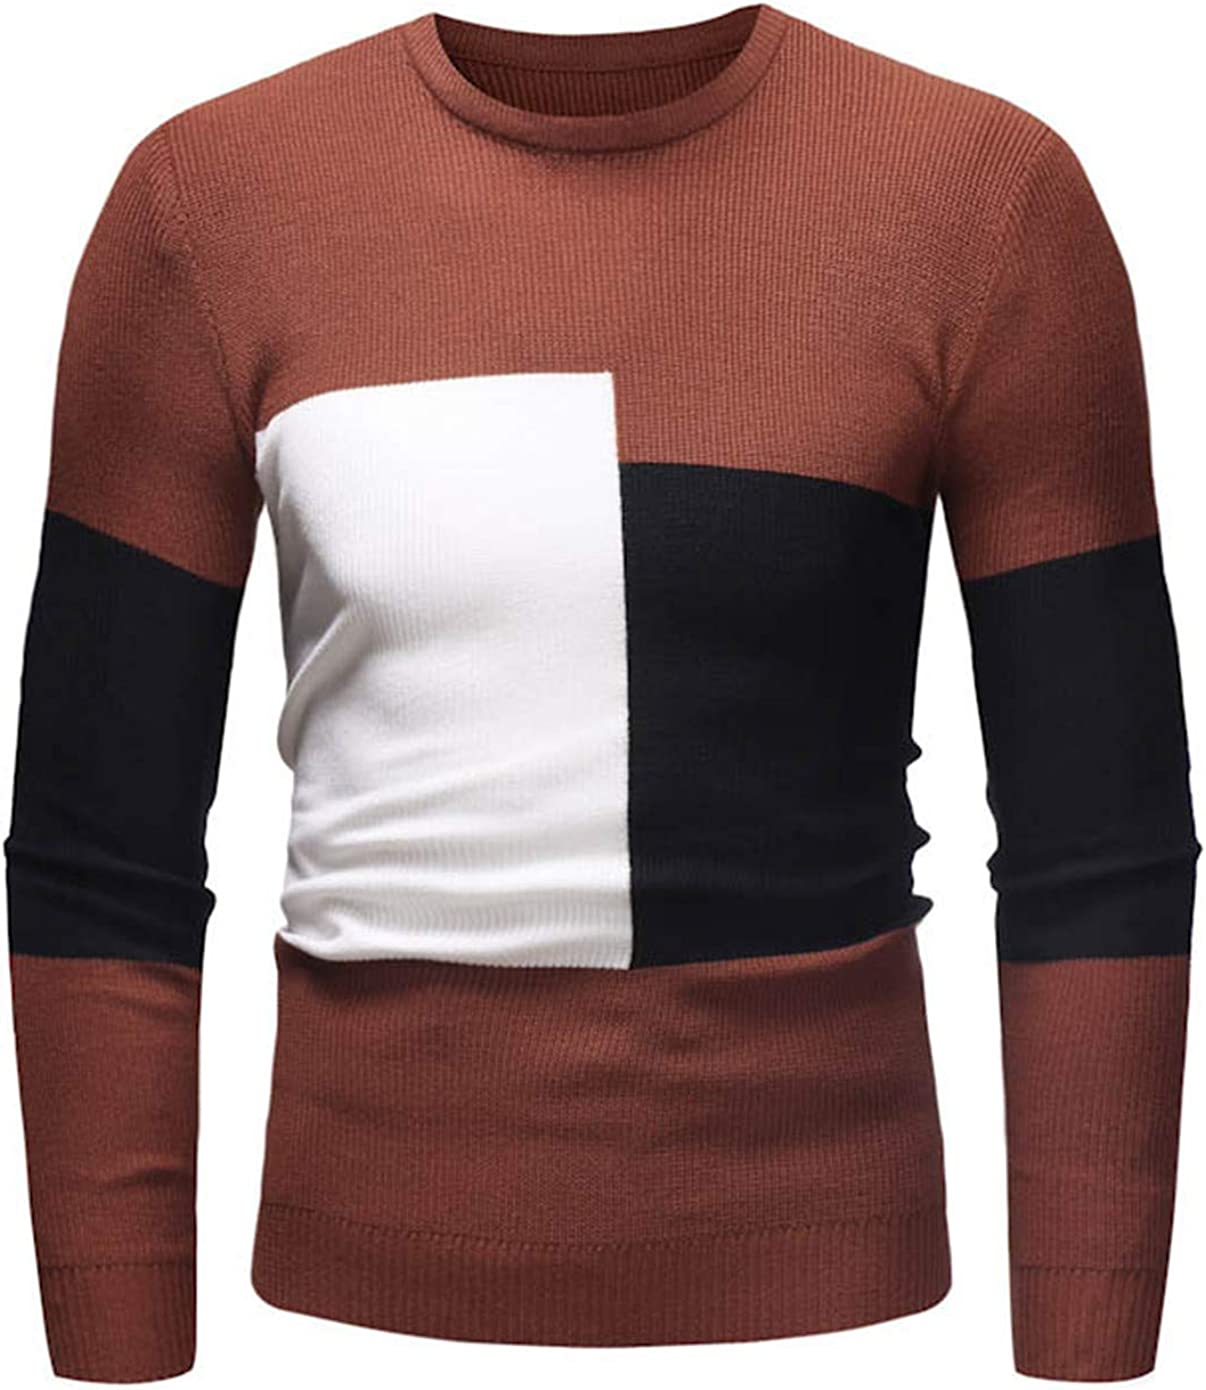 Soluo Men's Casual Stripe Pullover Cotton Crew Neck Sweaters Assorted Color Knitwear (Brown,Medium)